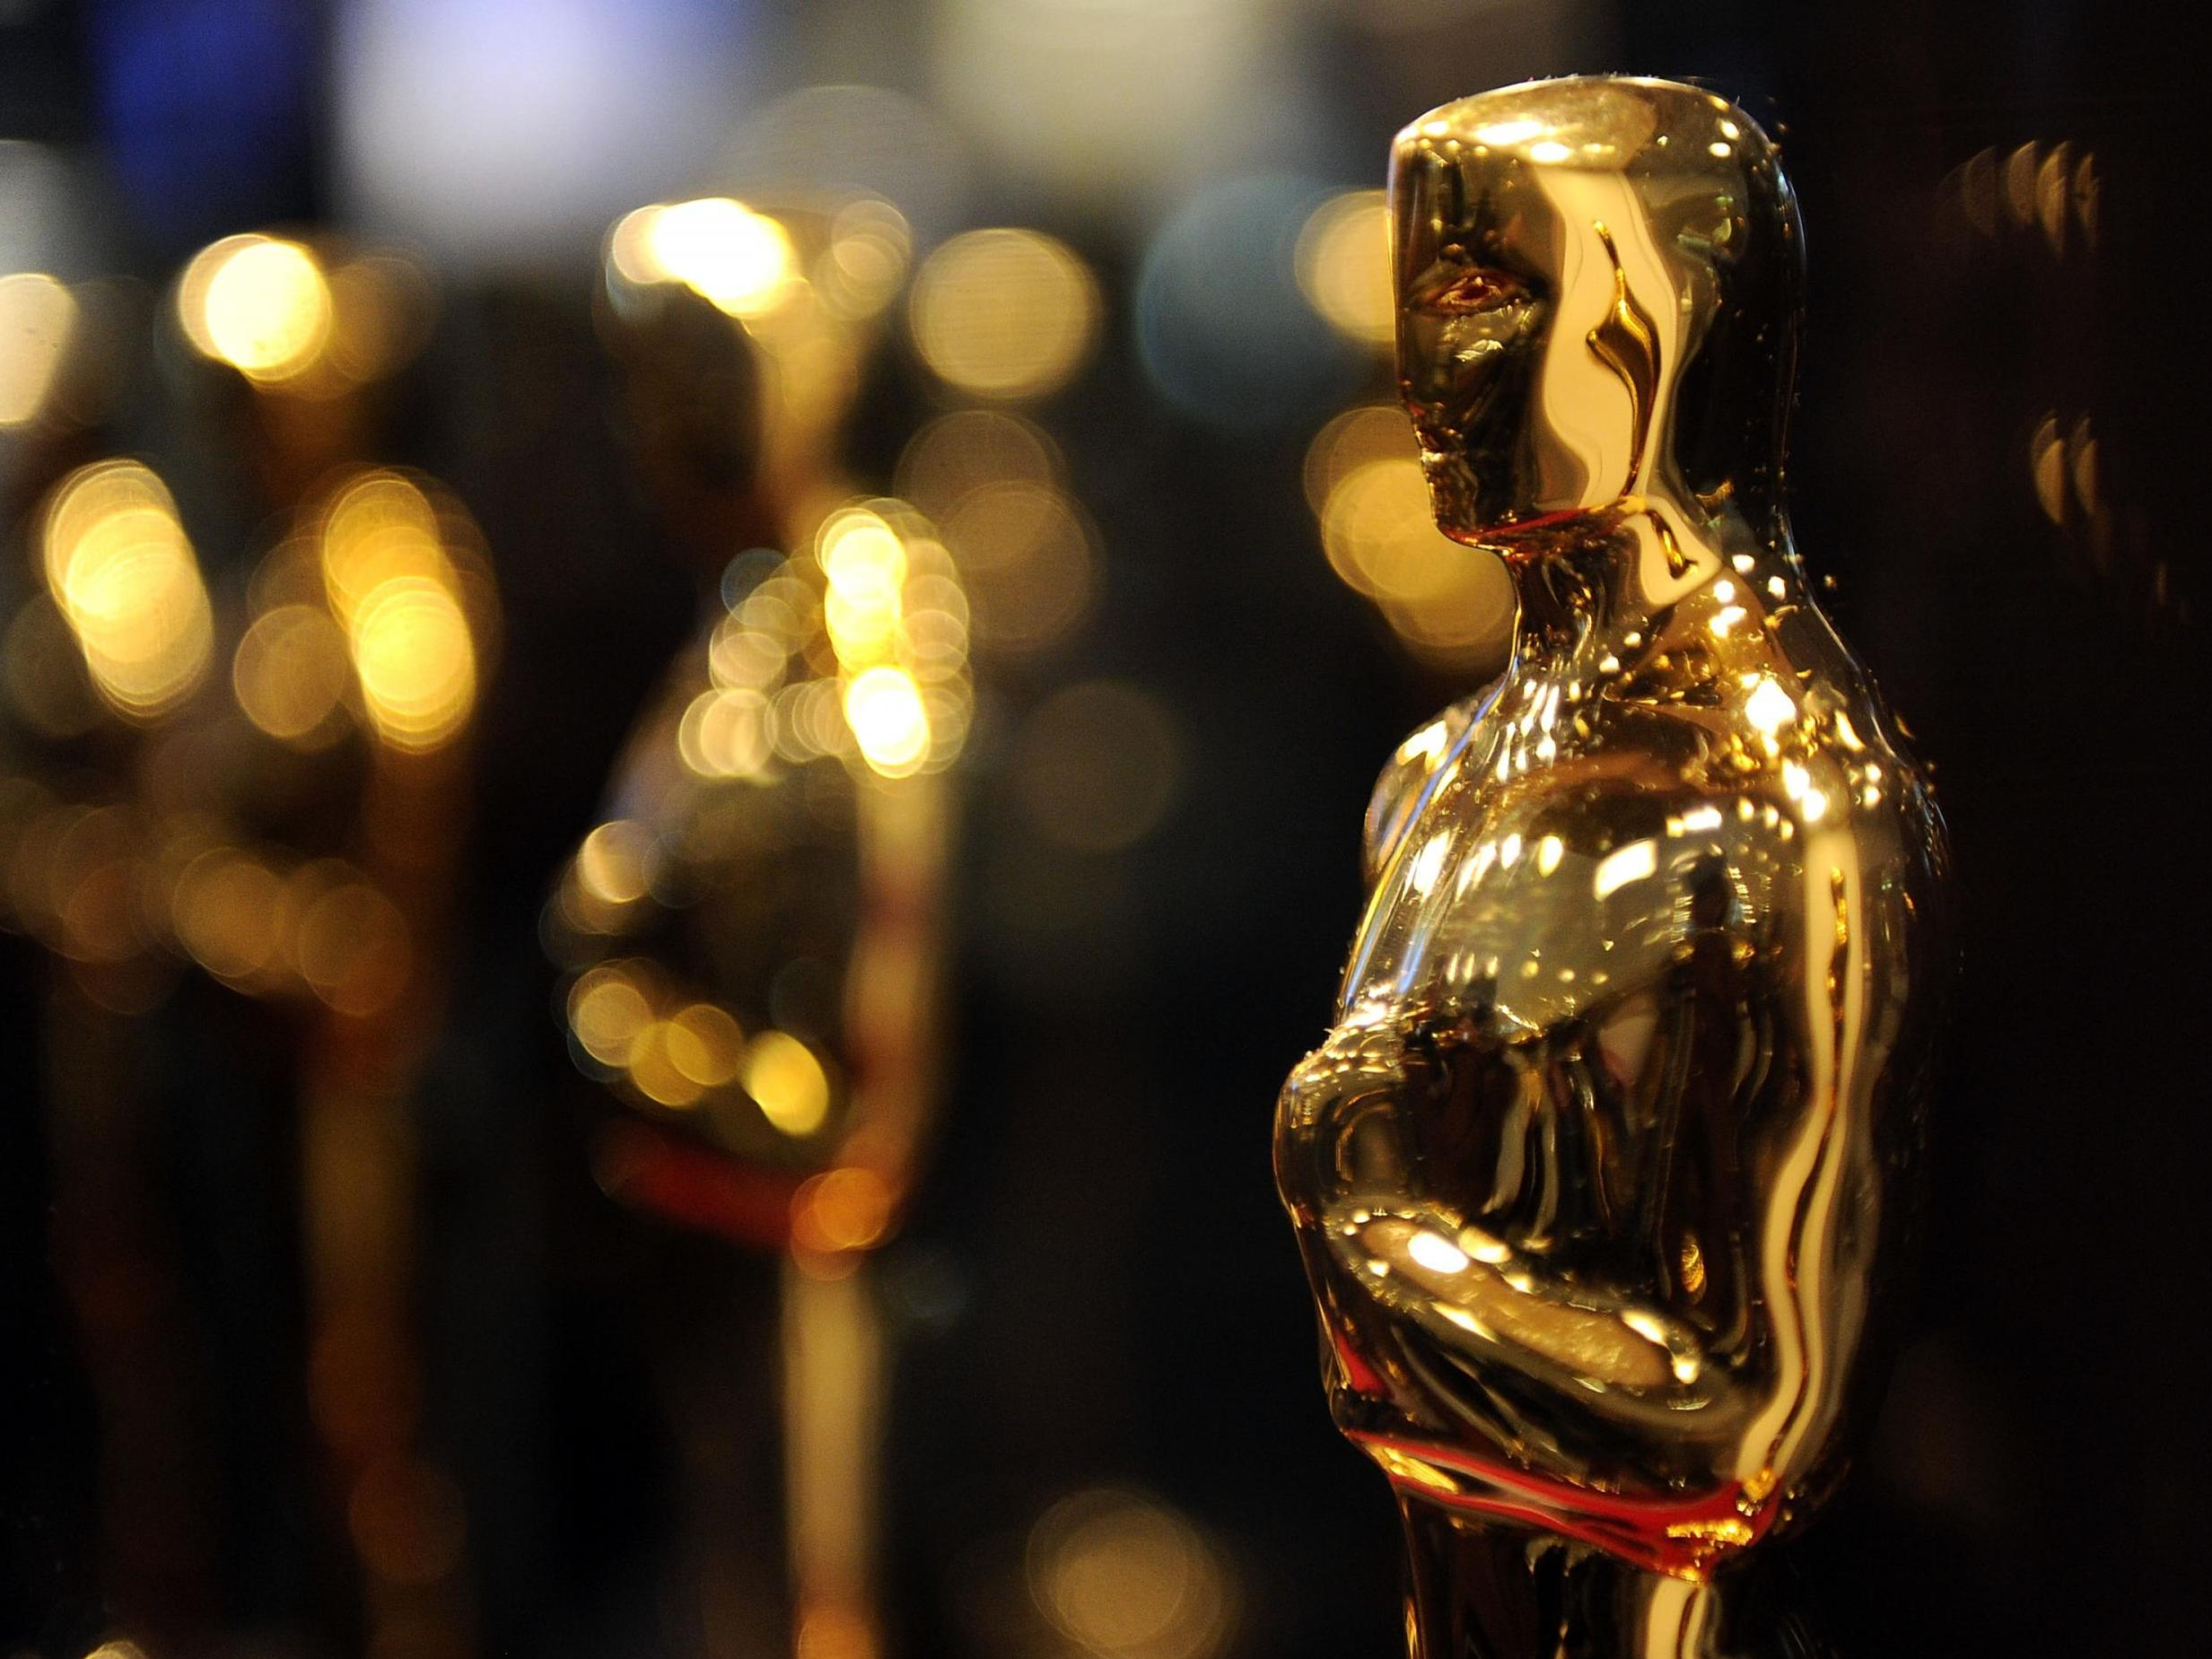 Oscars 2020: Academy Awards to be almost entirely vegan